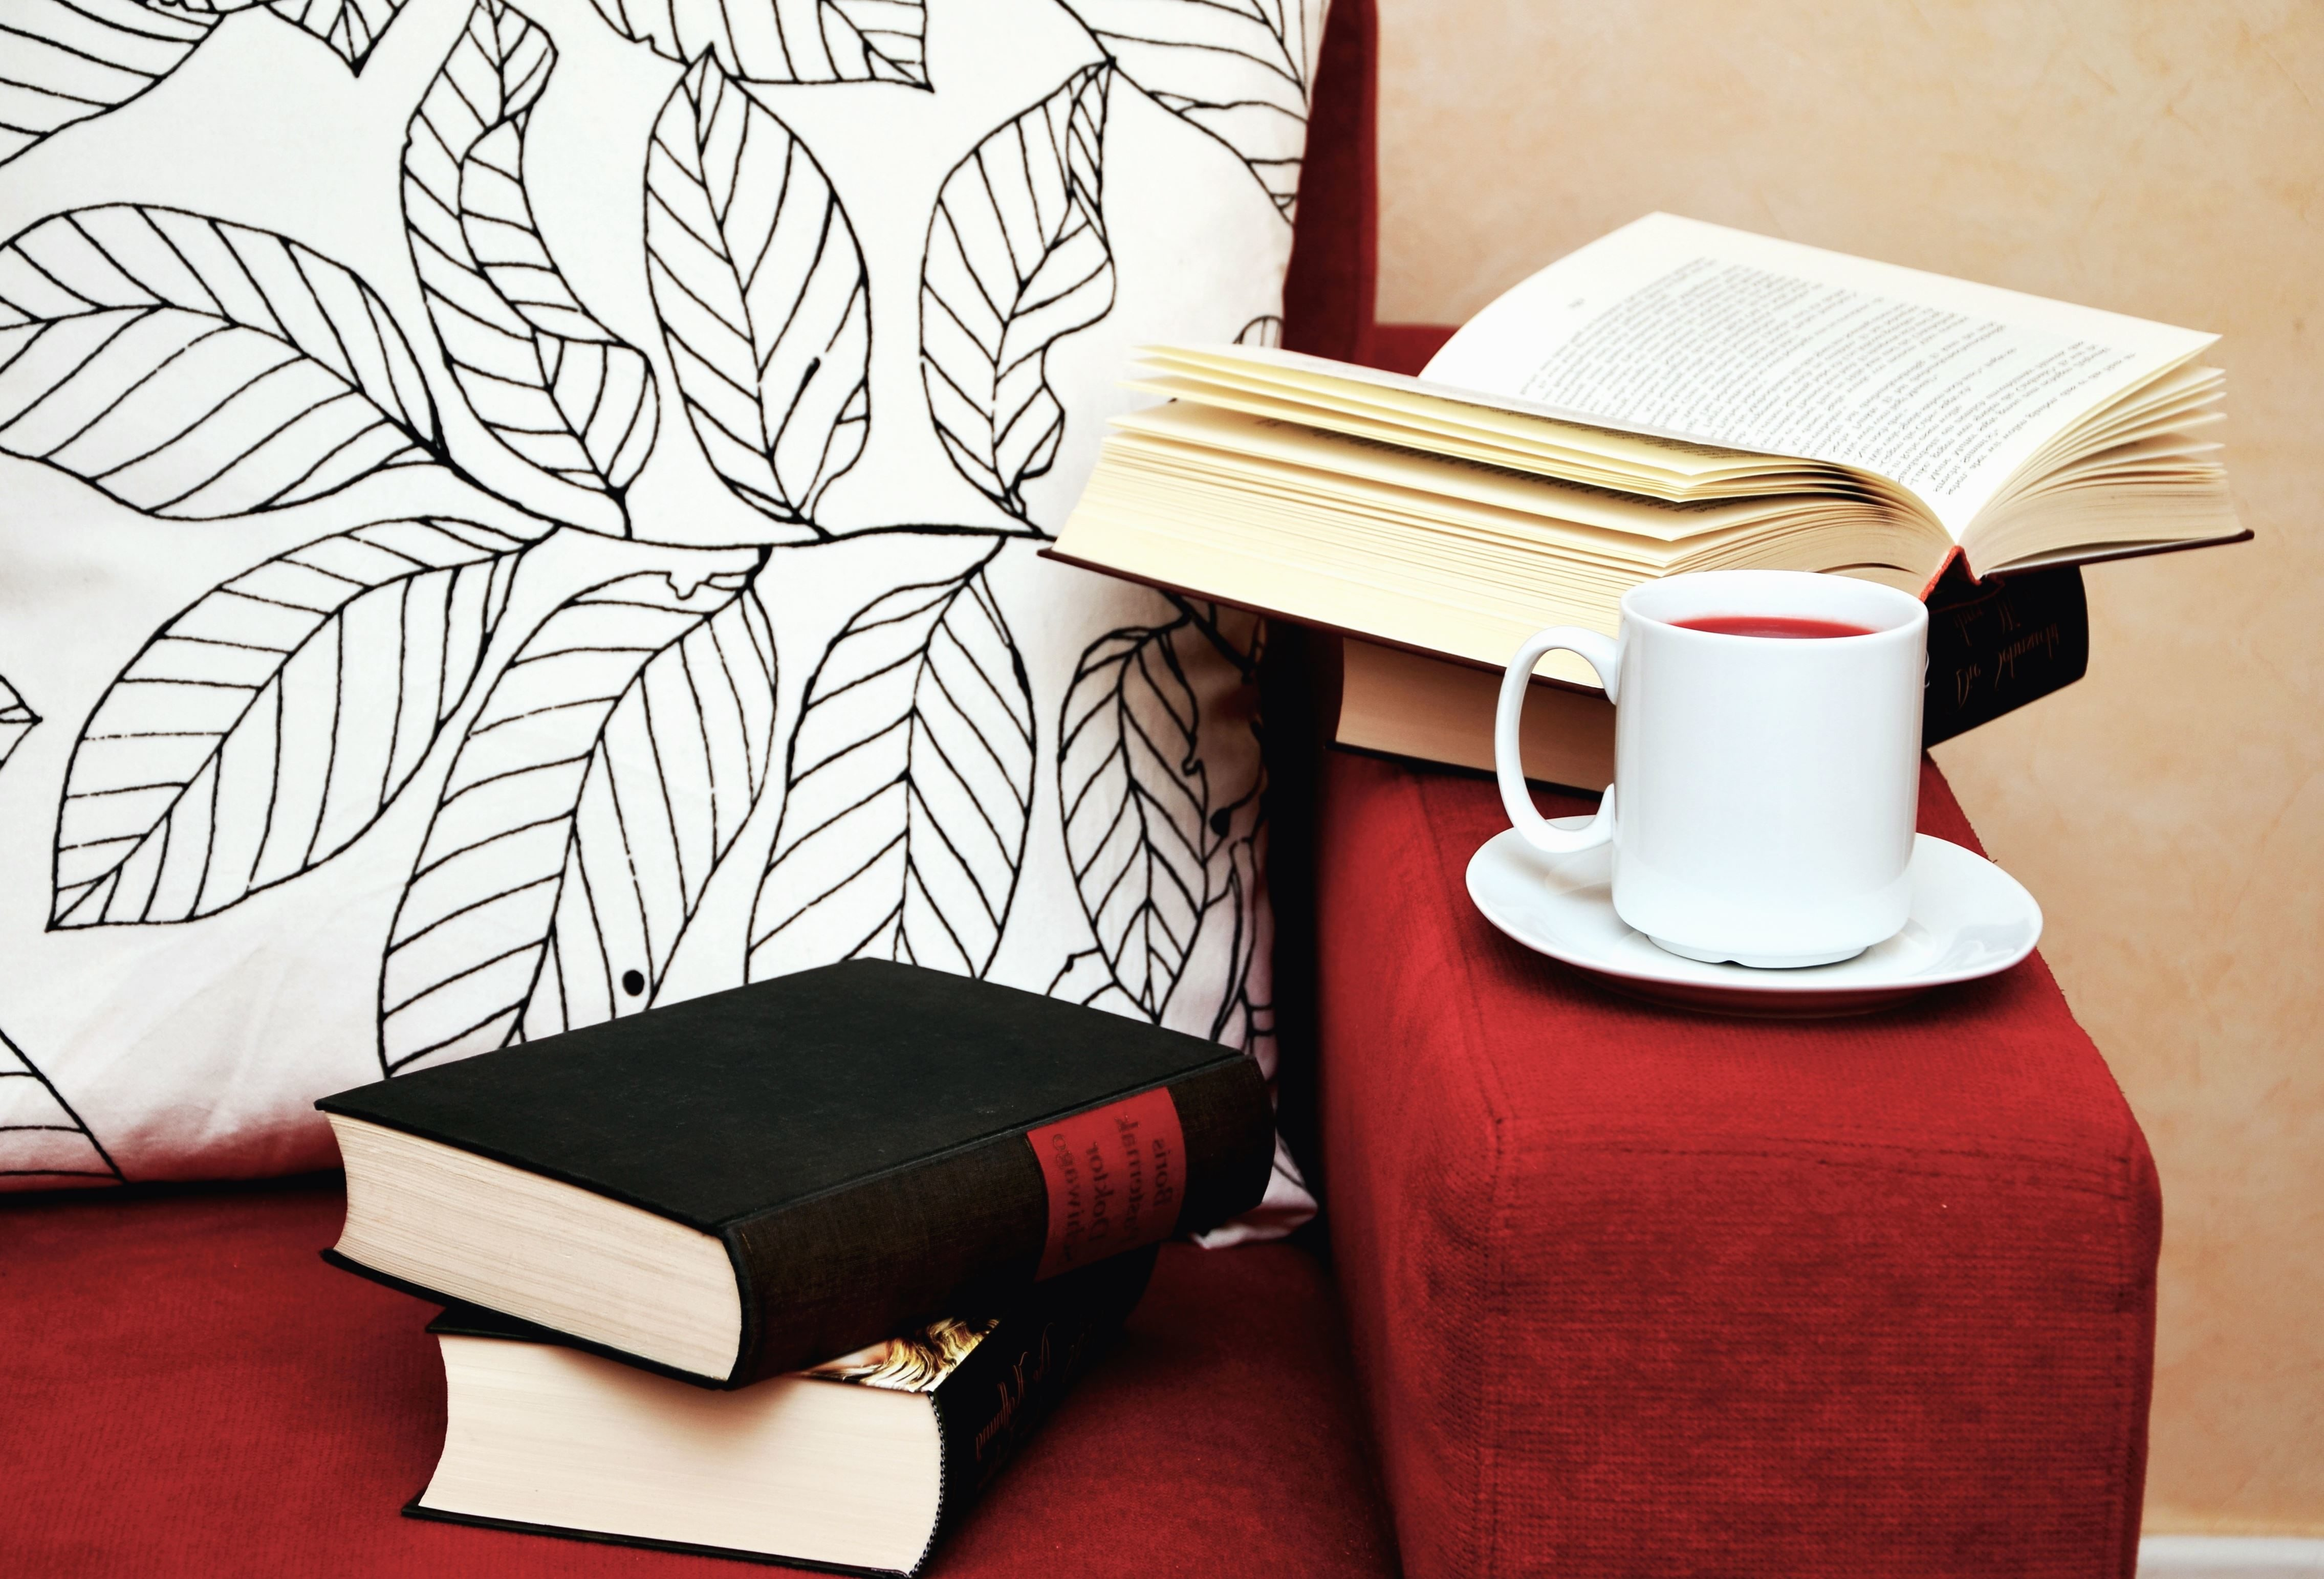 94 Free Interior Design Learning Books Free Images